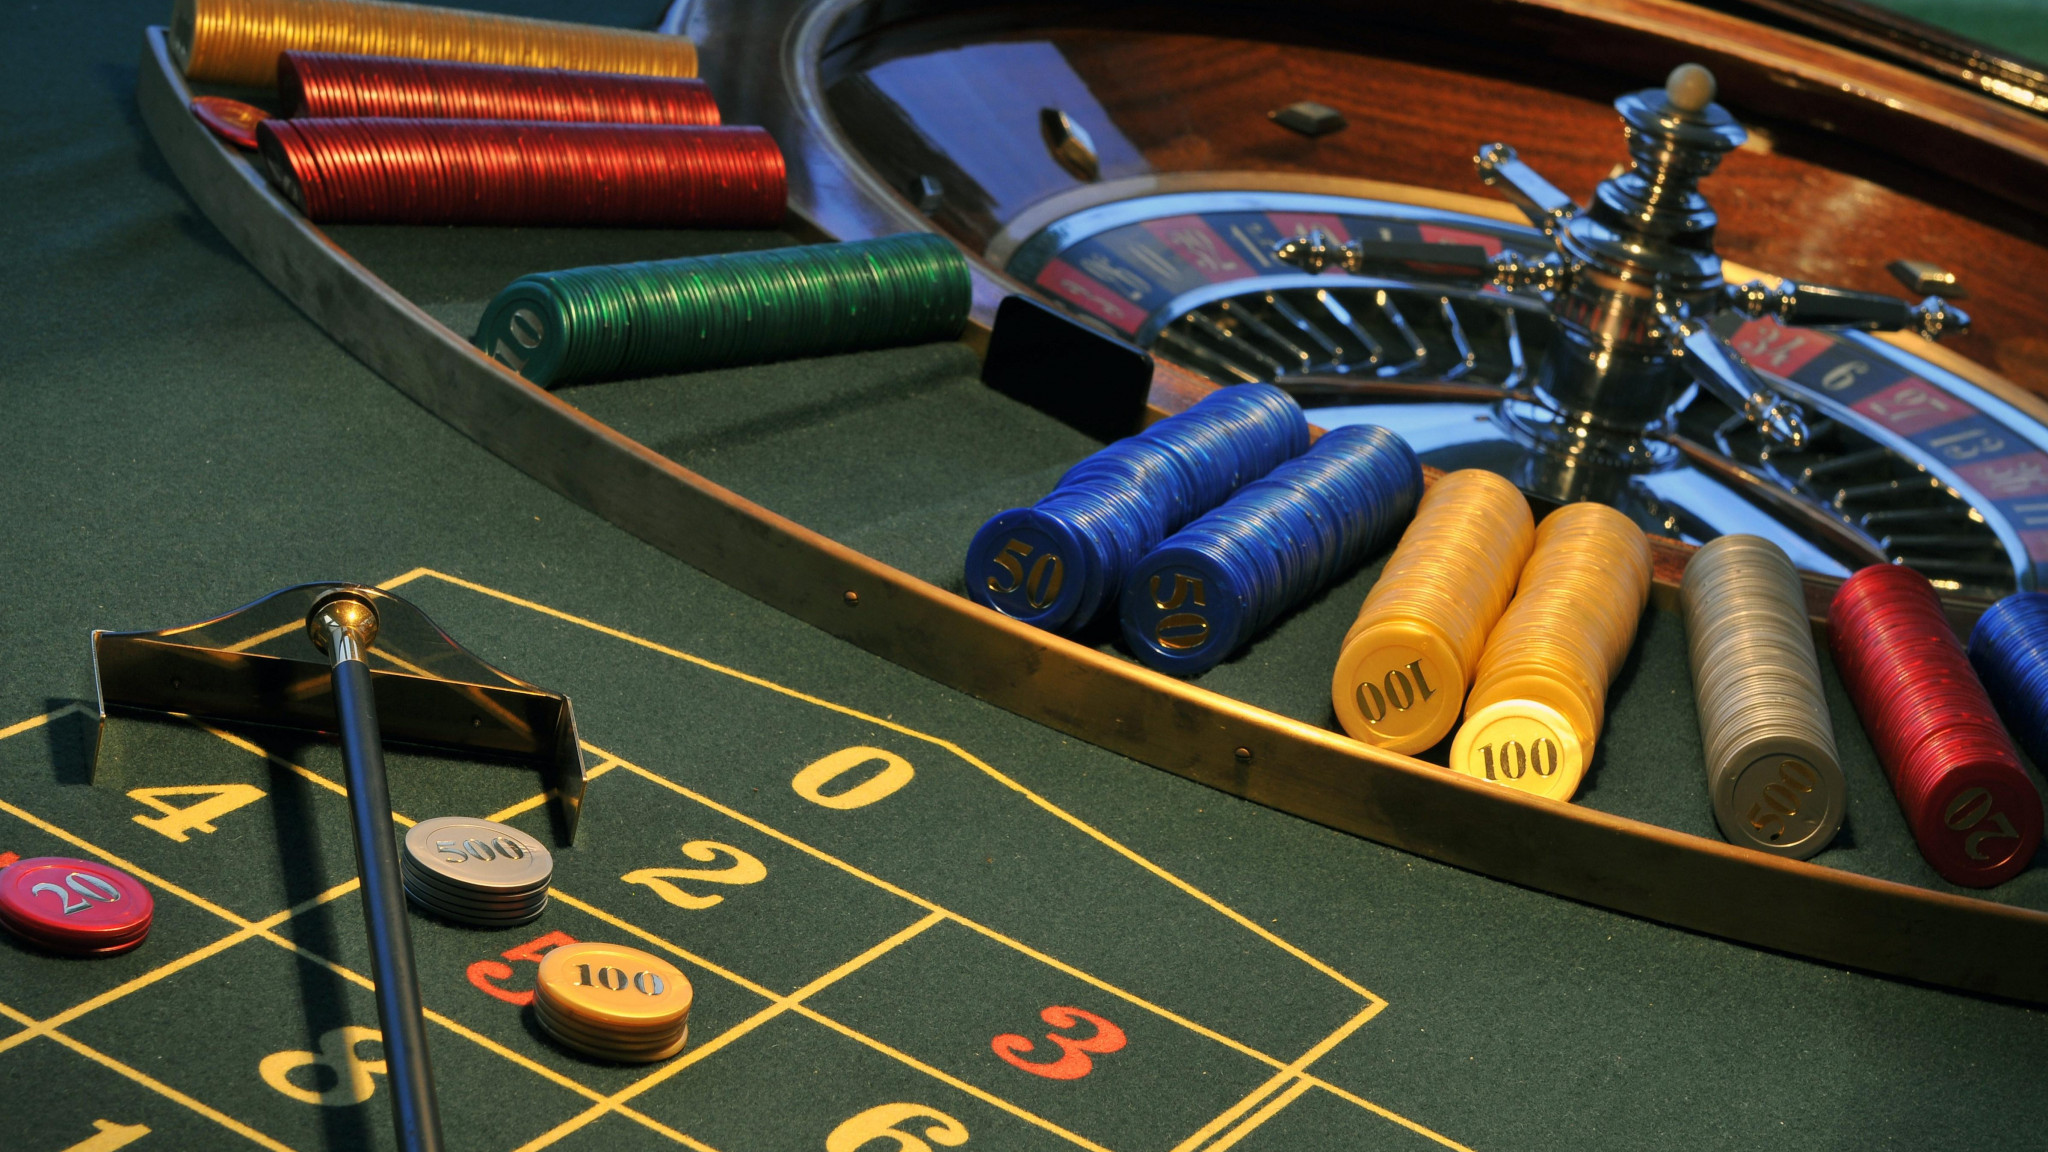 Pay with your credit or debit card and enjoy a gambling experience at the Canadian online casino